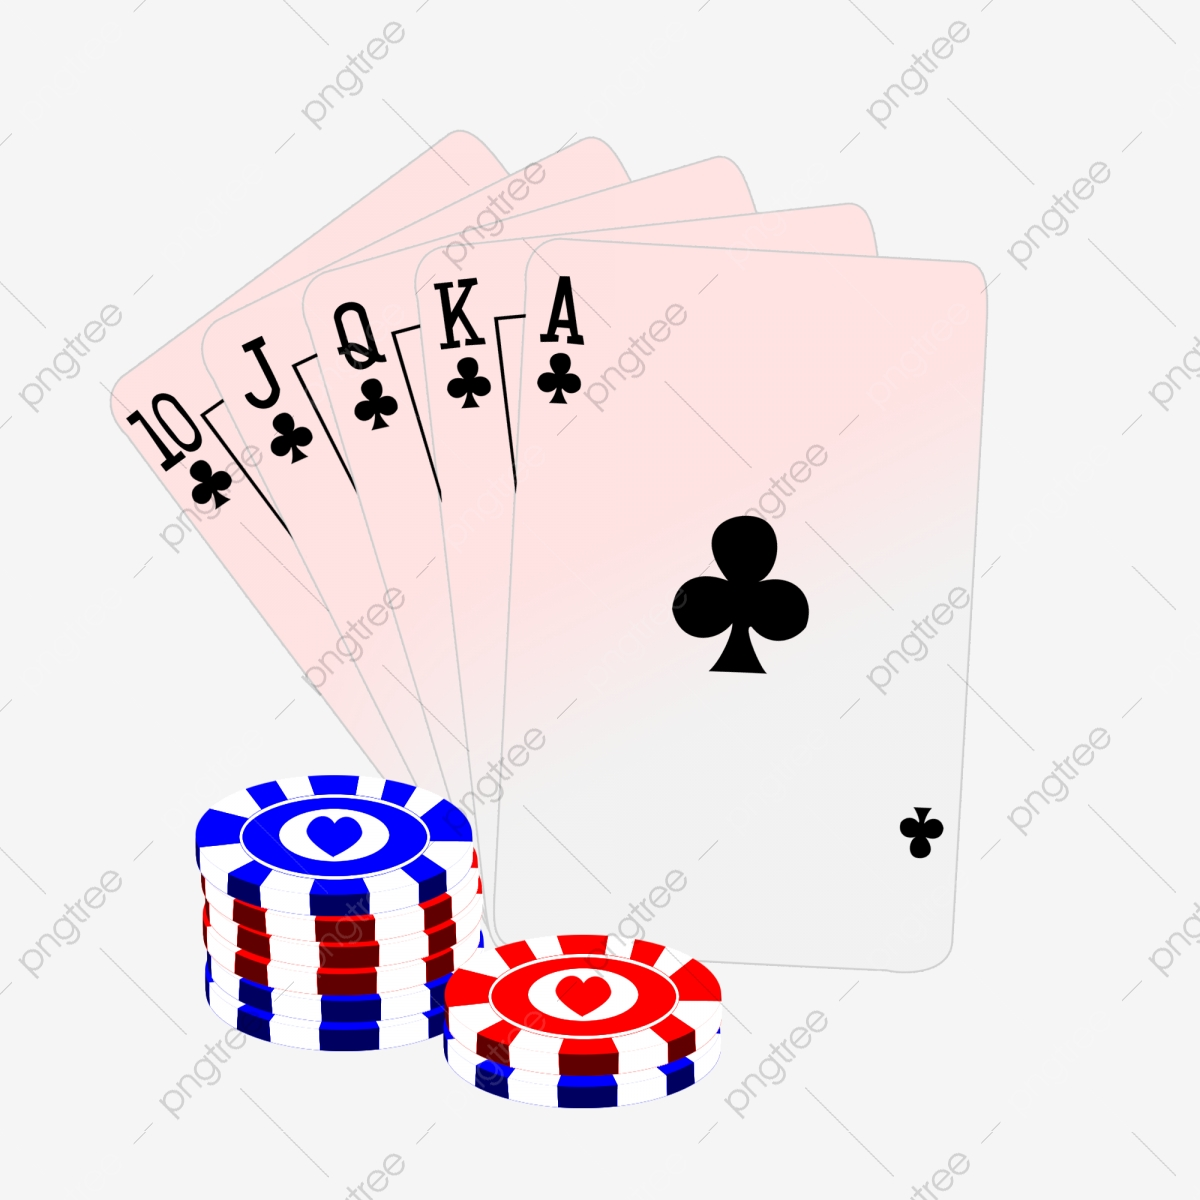 hight resolution of commercial use resource upgrade to premium plan and get license authorization upgradenow playing cards